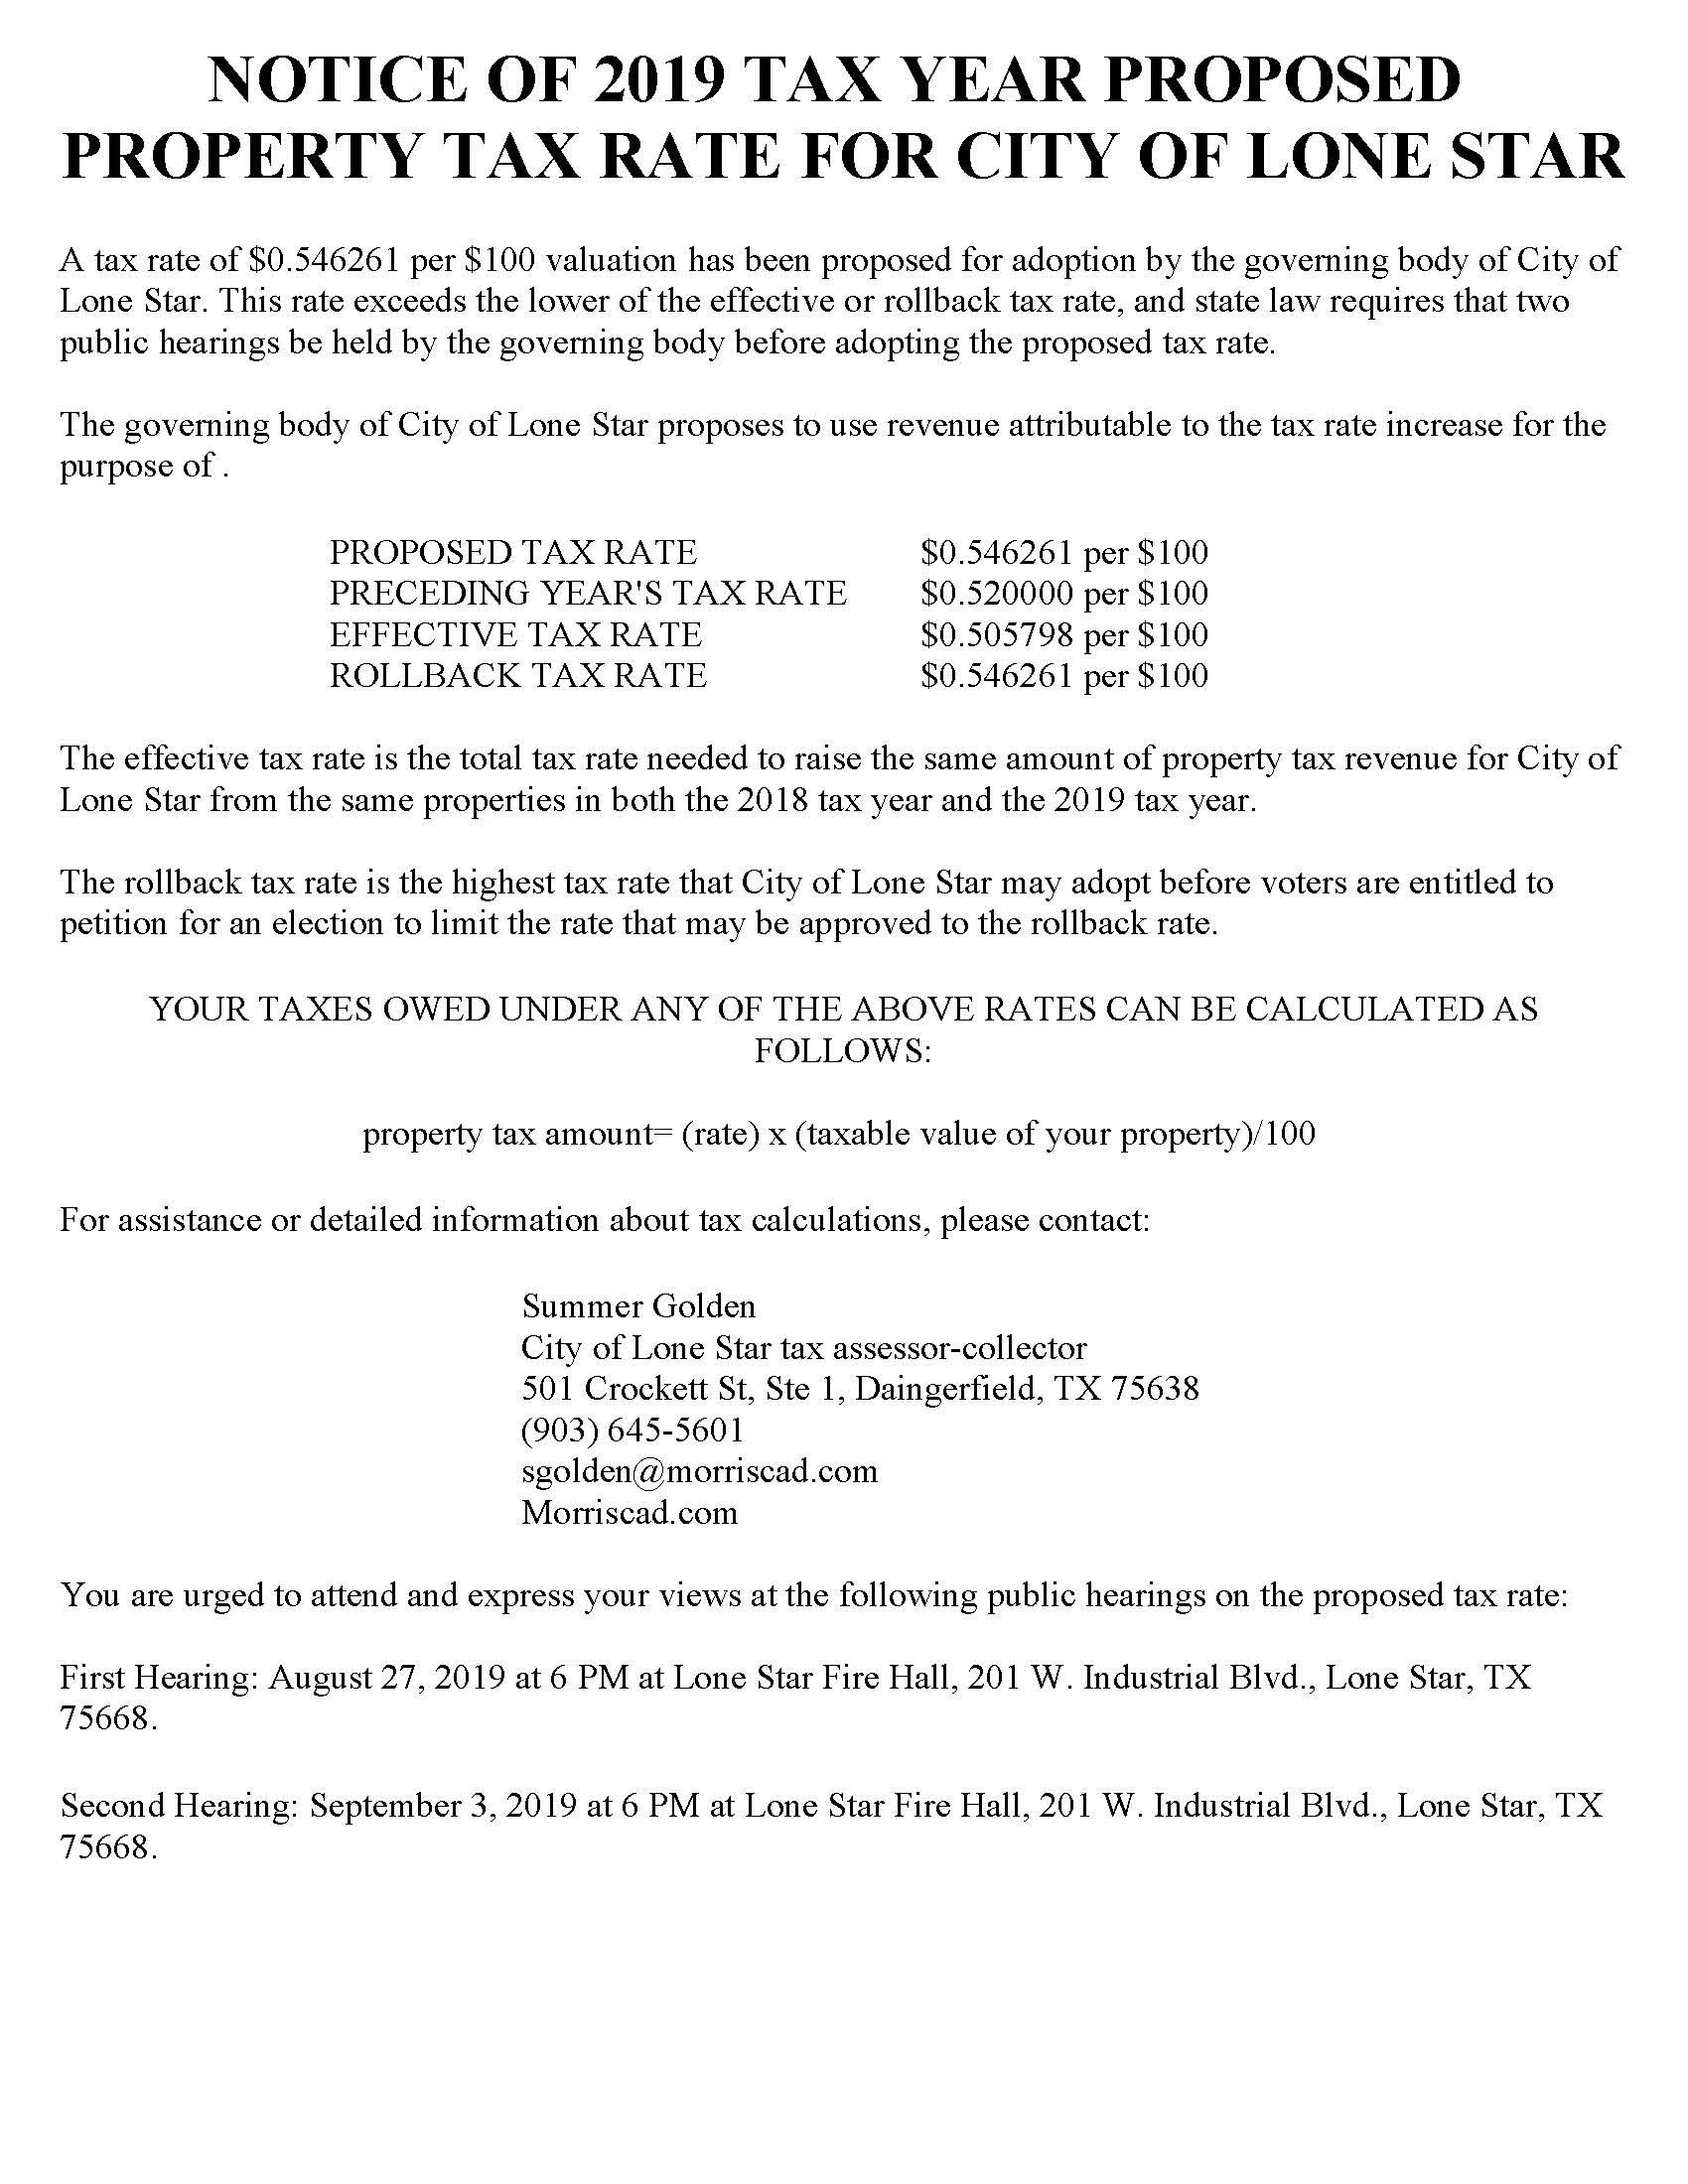 NOTICE OF 2019 PROPOSED PROPERTY TAX RATE